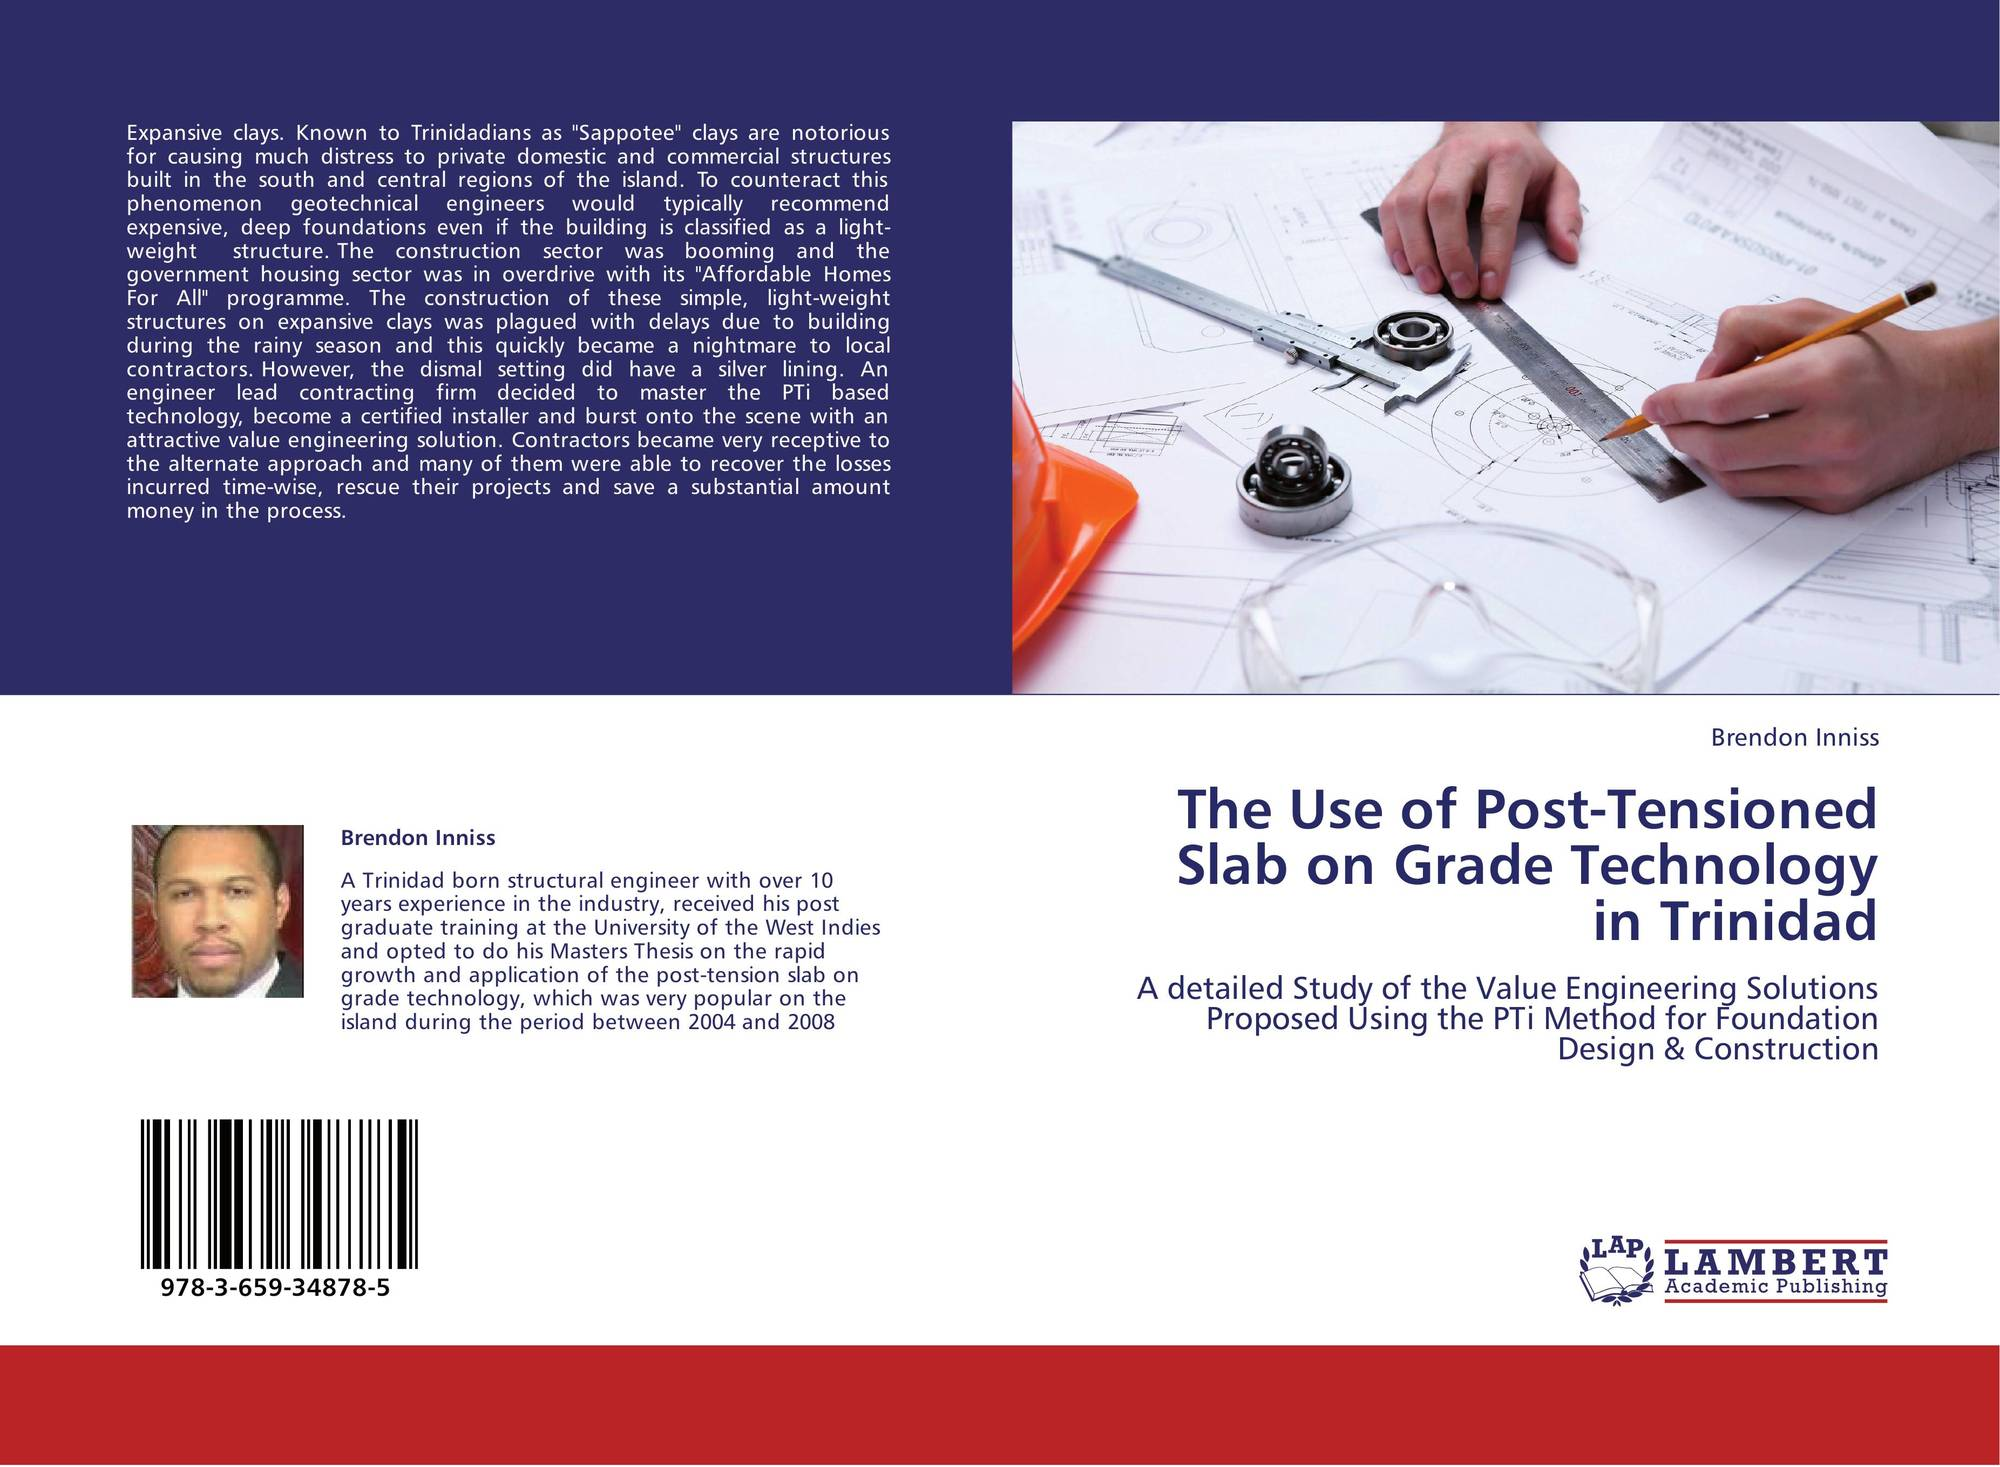 The Use of Post-Tensioned Slab on Grade Technology in